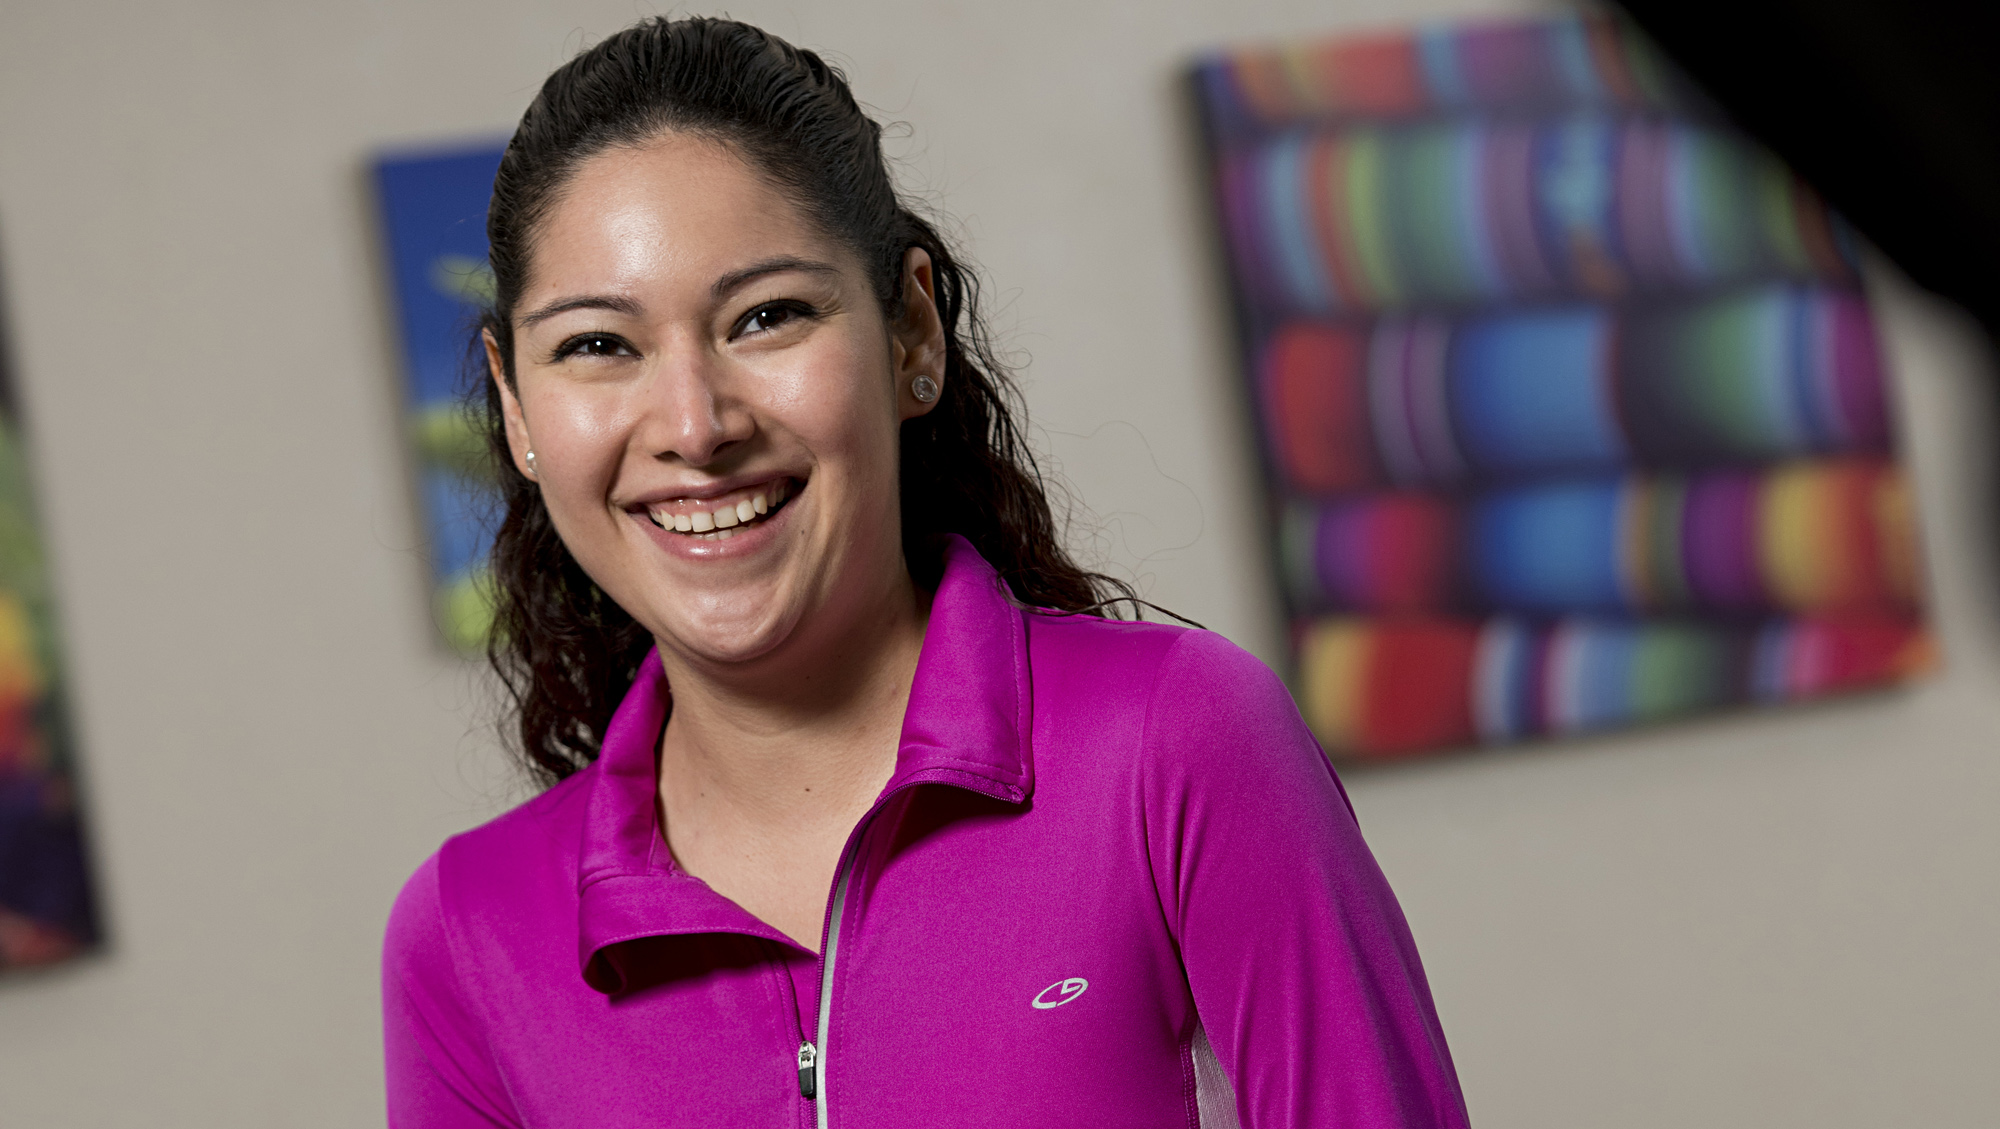 Ileana Hernandez, 27-years old, was born with two holes in her heart.